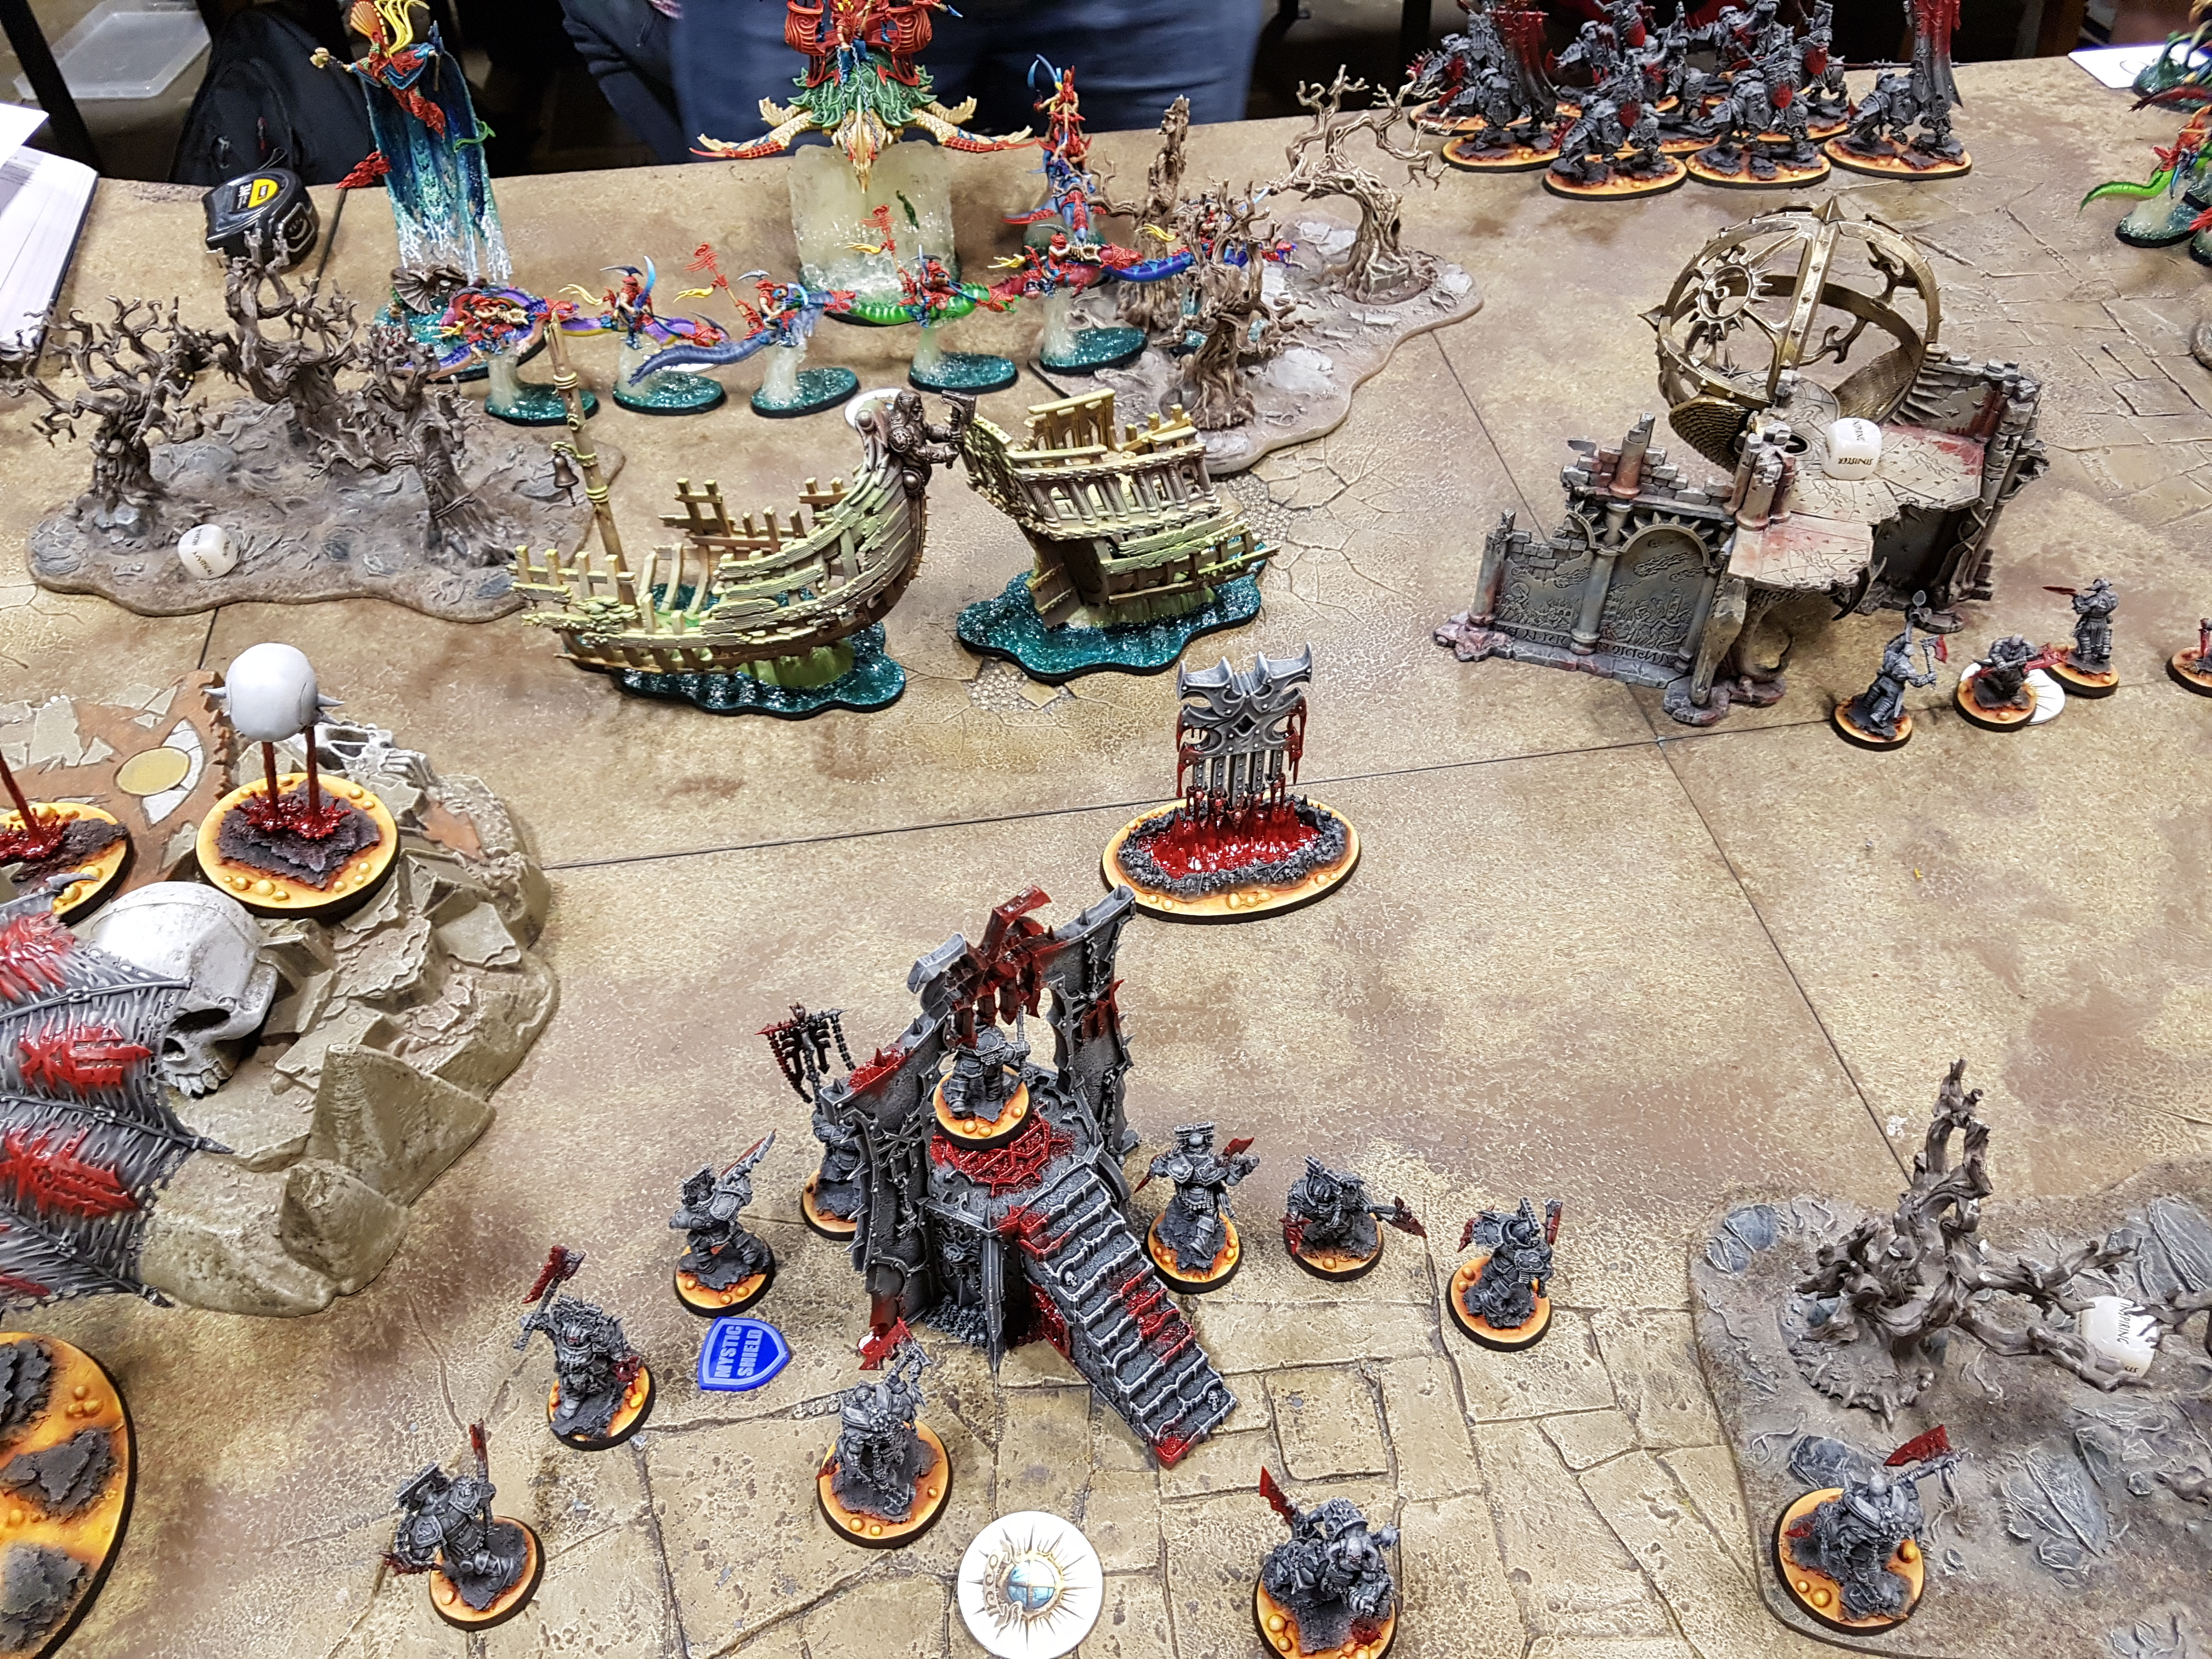 FaceHammer Podcast - An Age of Sigmar Podcast based in the